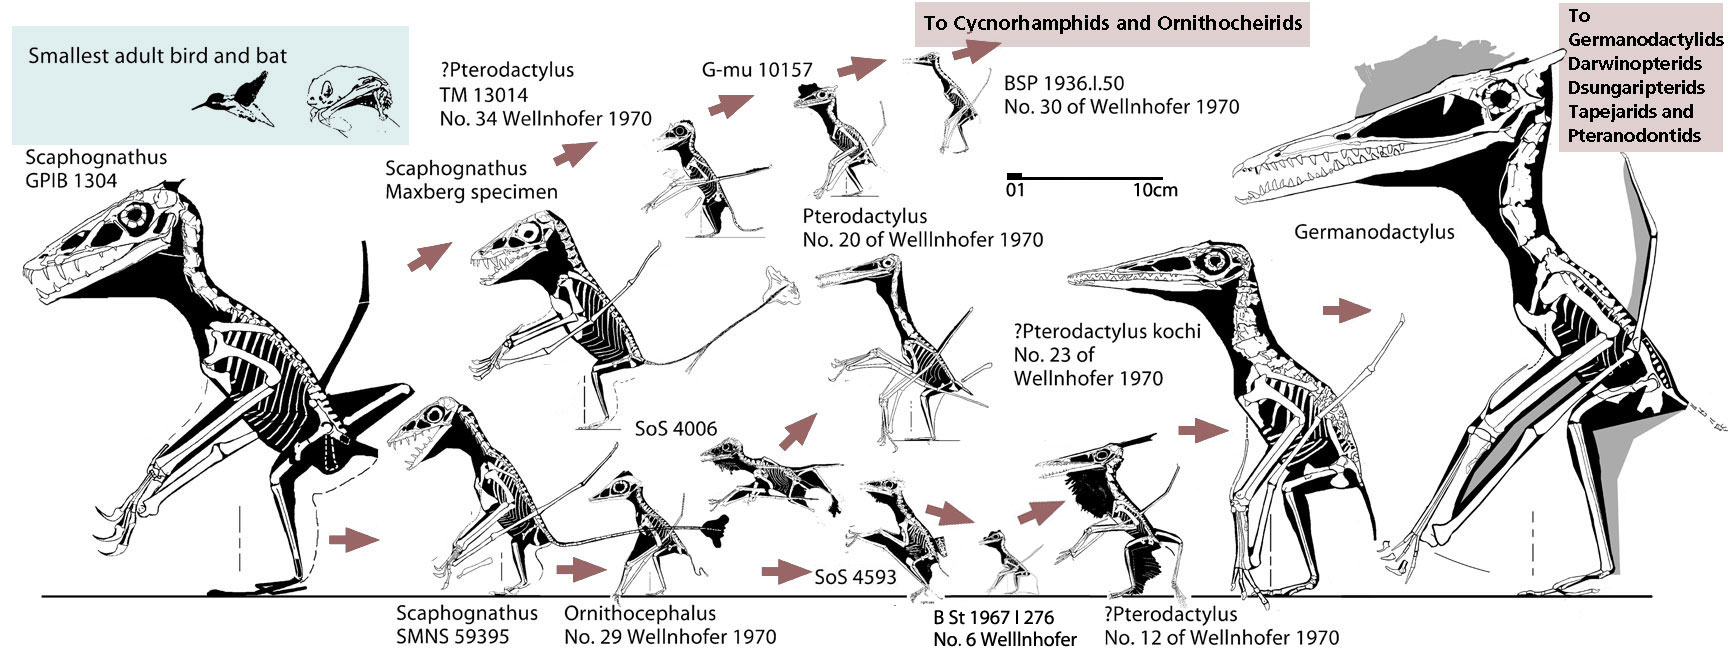 Reptileevolution And Tetrapod Zoology Part 5 The Pterosaur